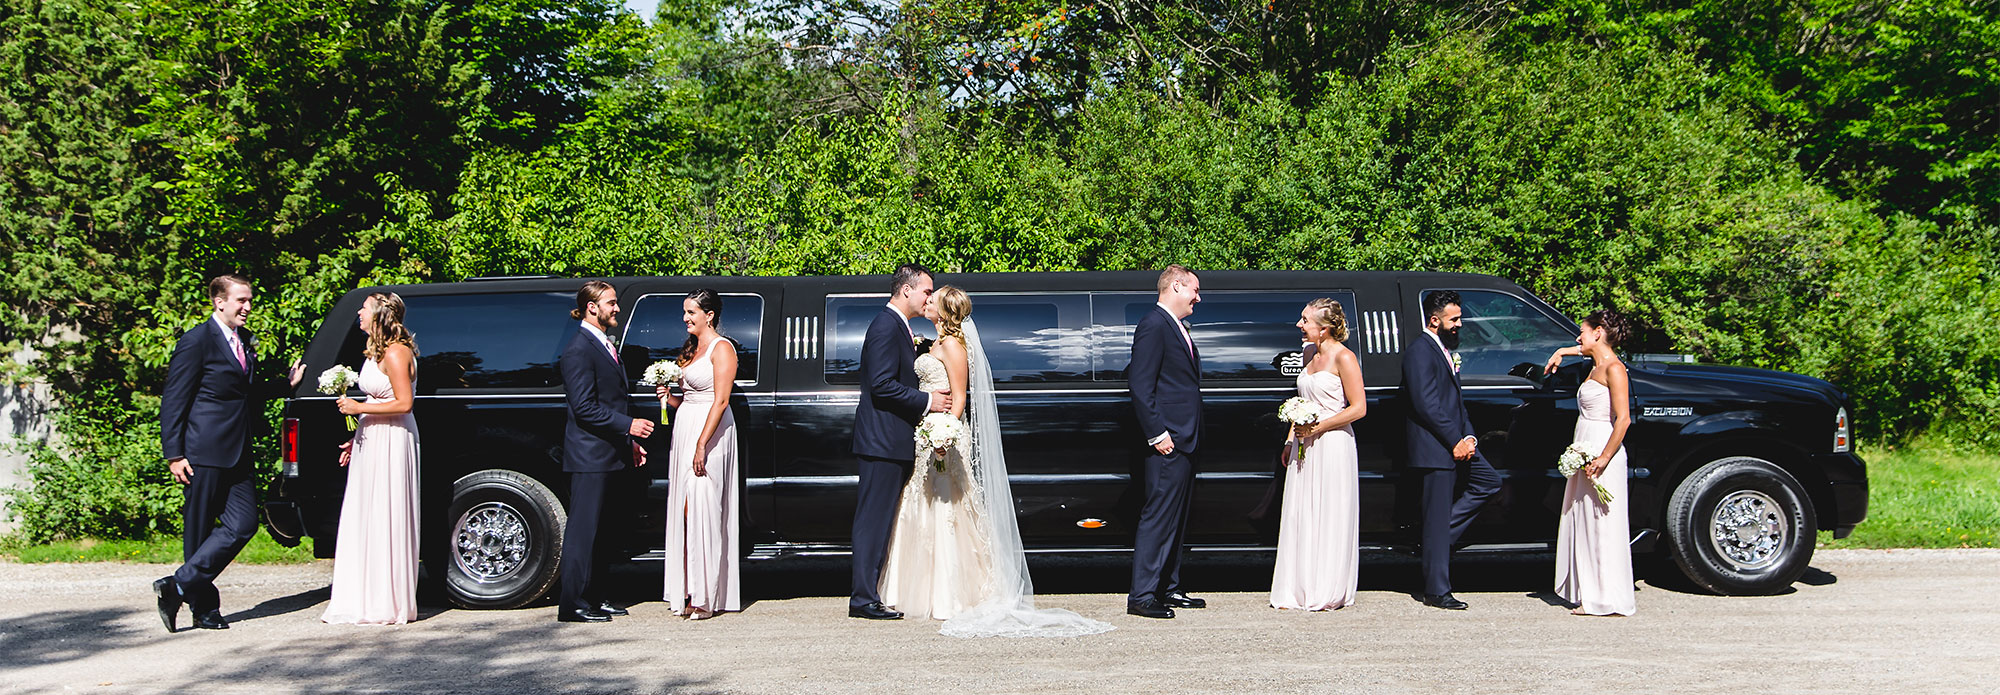 Wedding Party in front of a black limousine